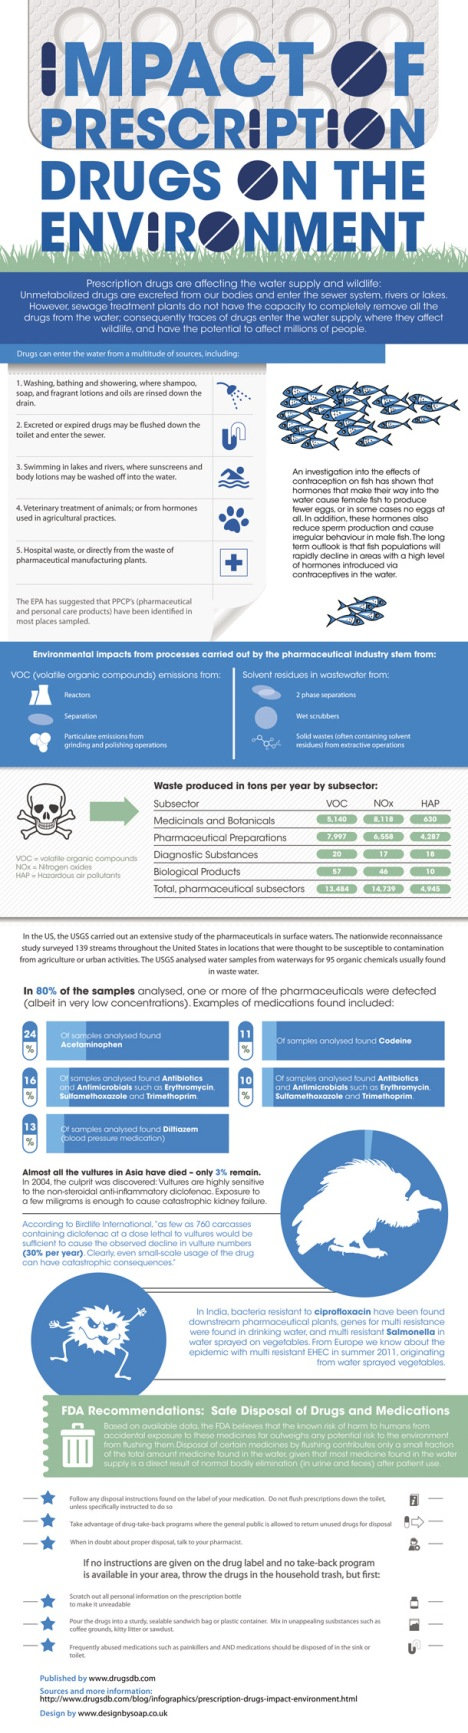 impact-prescription-drugs-environment-infographic-small